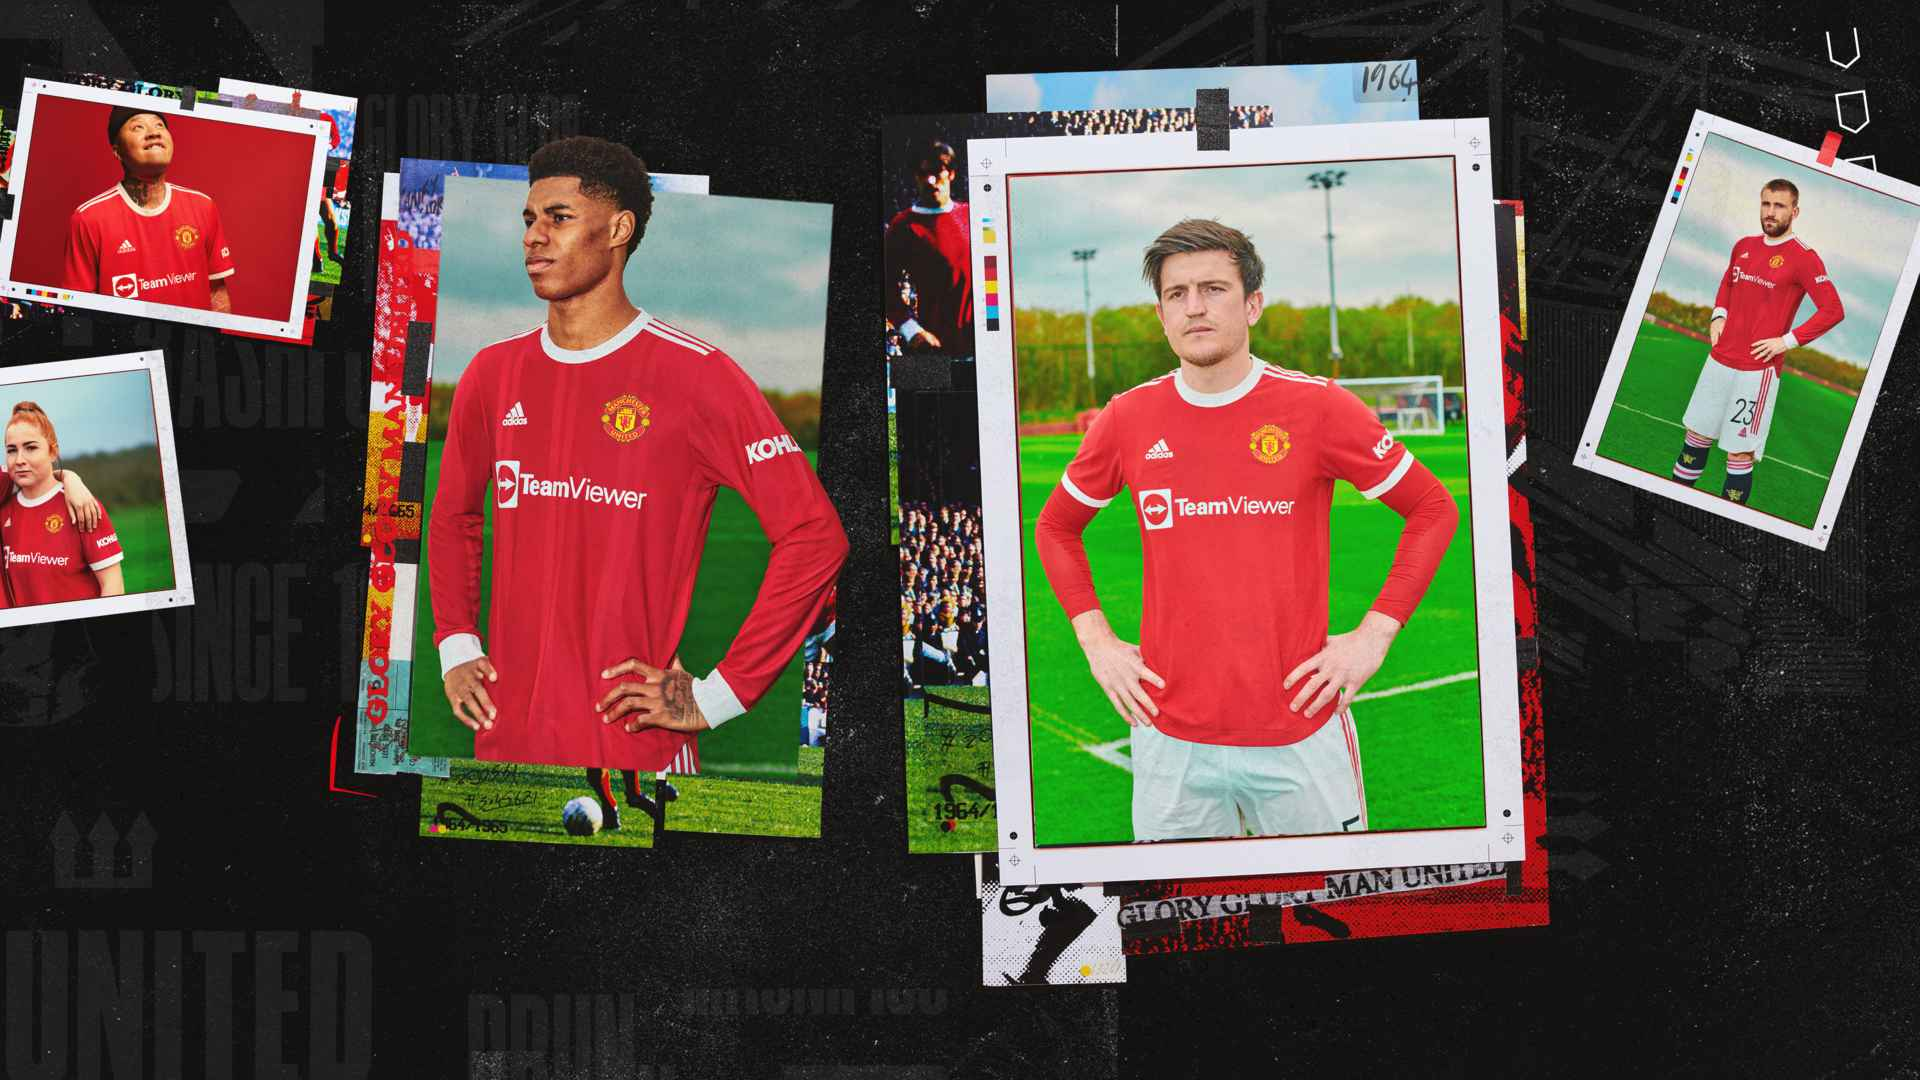 Man Utd And Adidas Reveal New Home Kit For 2021 22 Season Manchester United